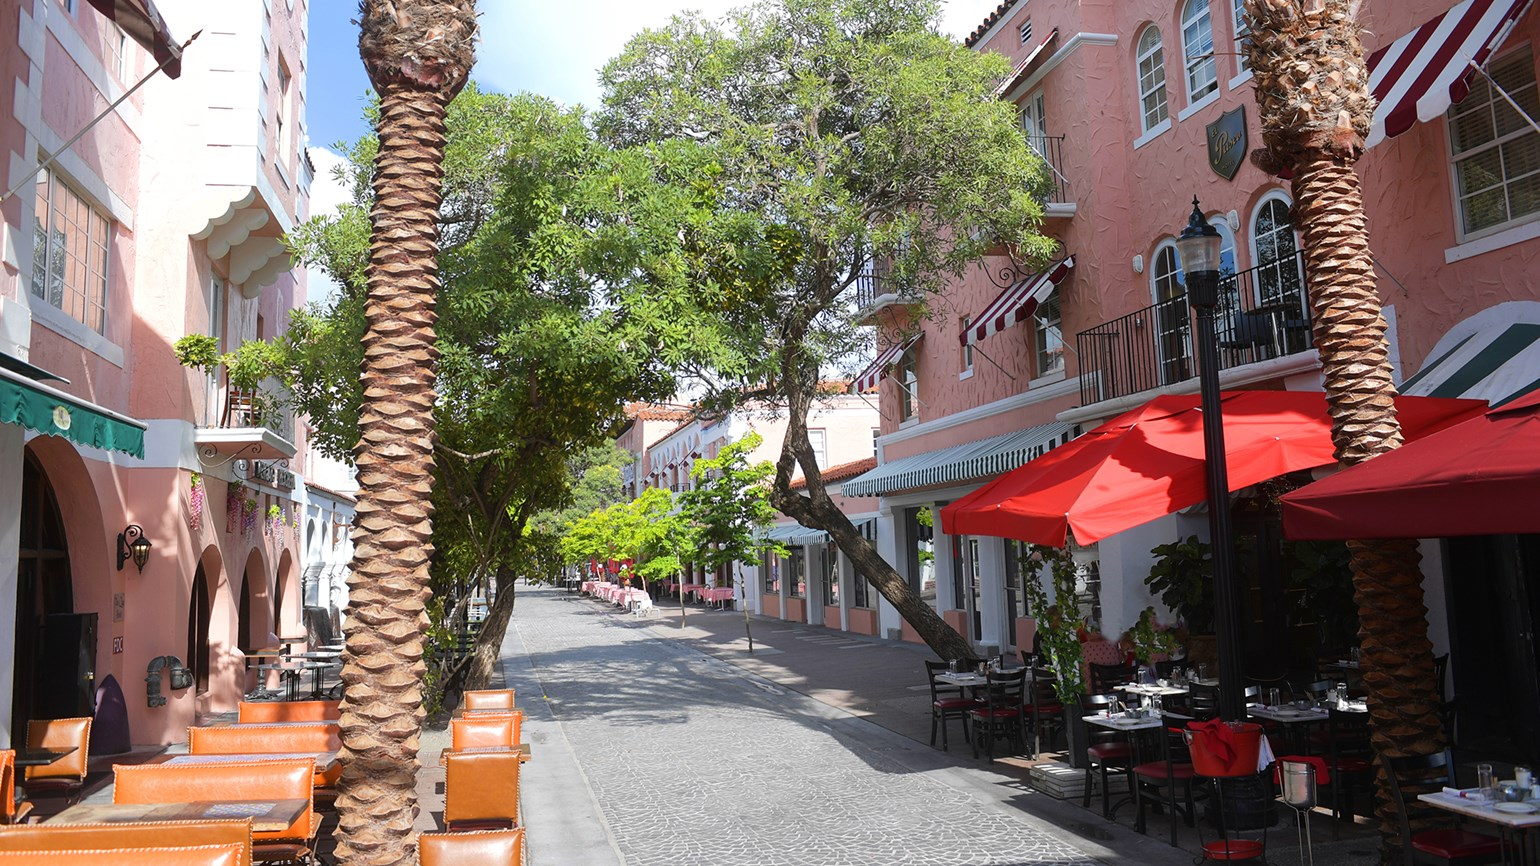 South Beach's historical Espanola Way gets a refresh